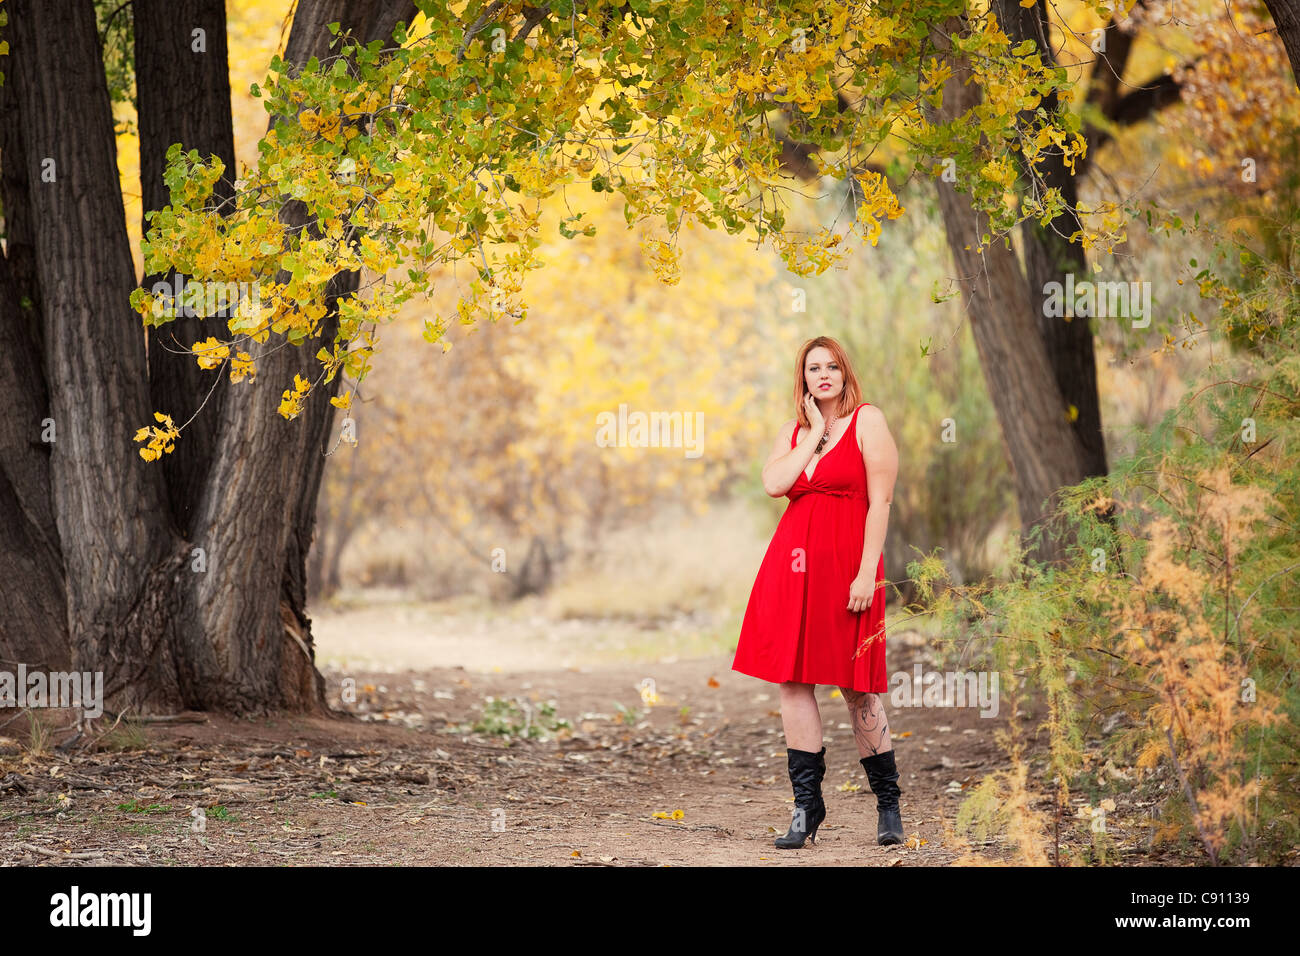 Beautiful Auburn Haired woman outdoors in nature, autumn. She is a Caucasian woman wearing a red dress. Stock Photo